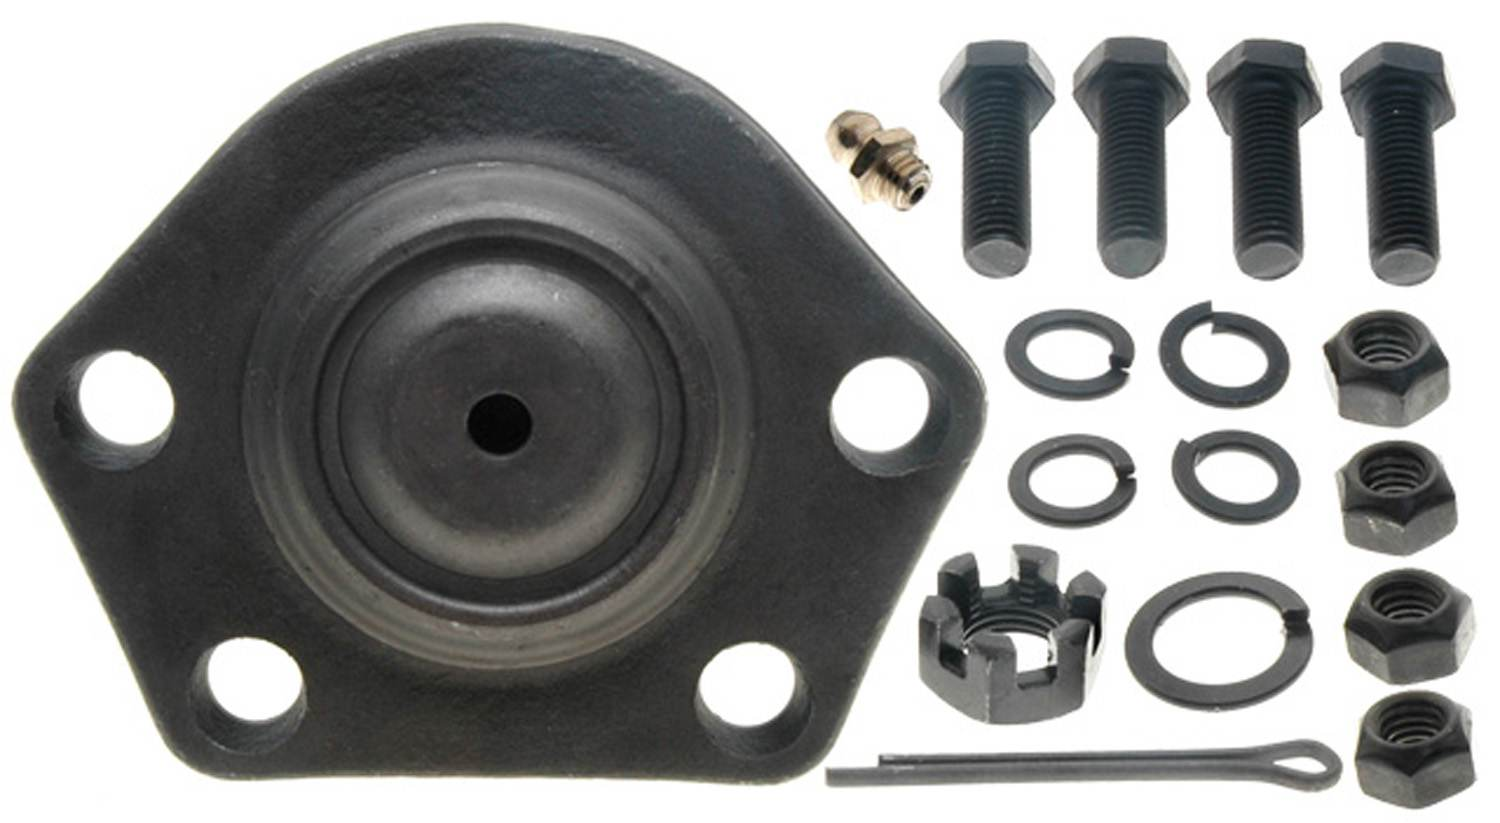 ACDELCO SILVER/ADVANTAGE - Suspension Ball Joint - DCD 46D0024A